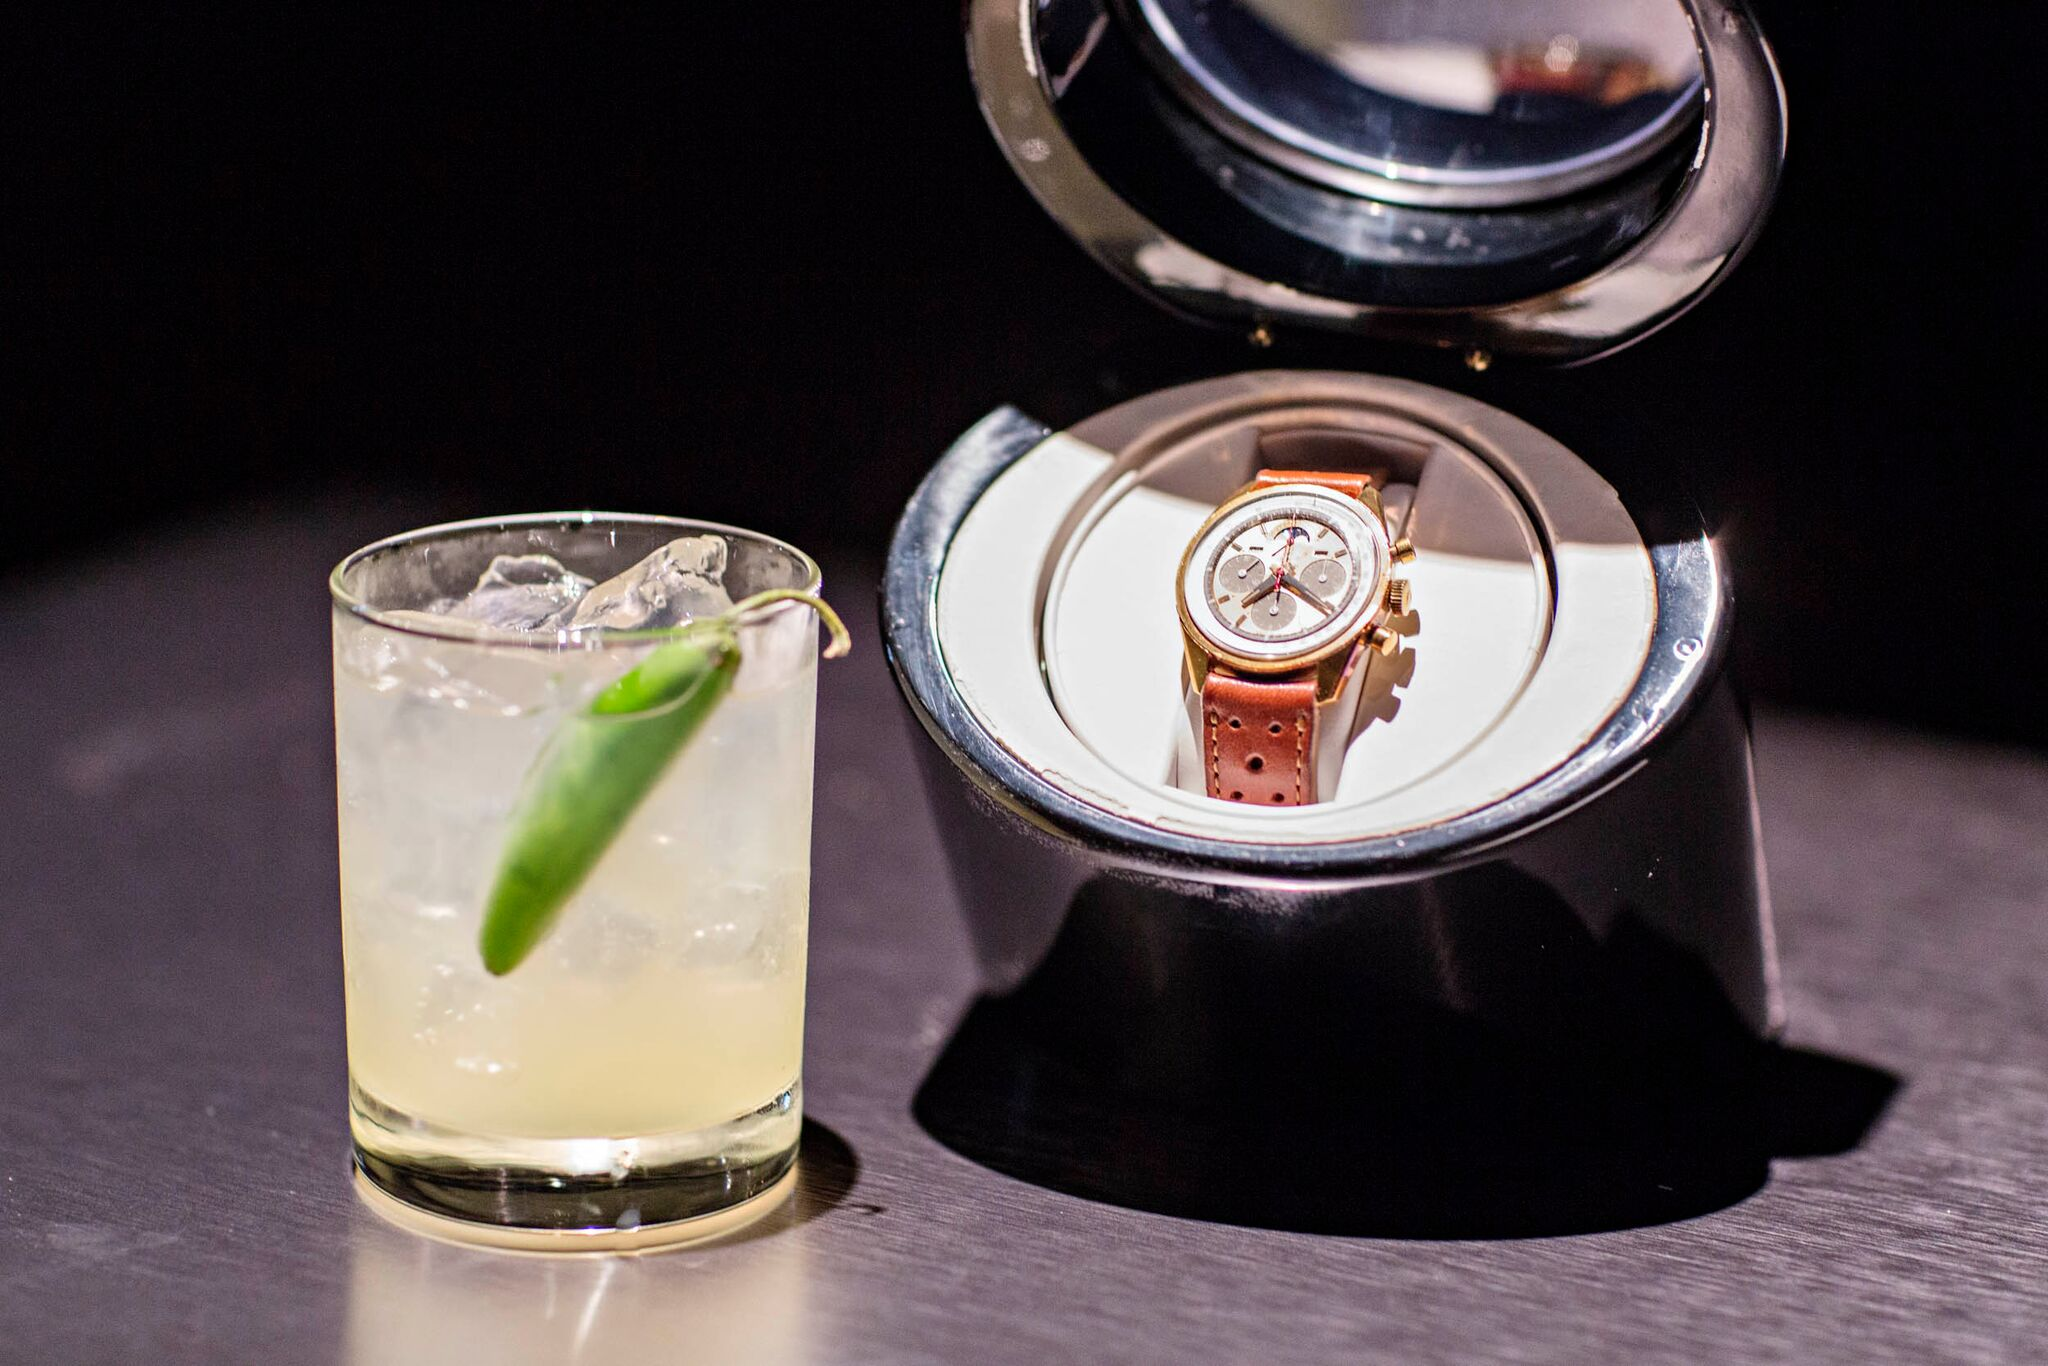 Maestro Dobel and HODINKEE Bring Together Watches and Tequila